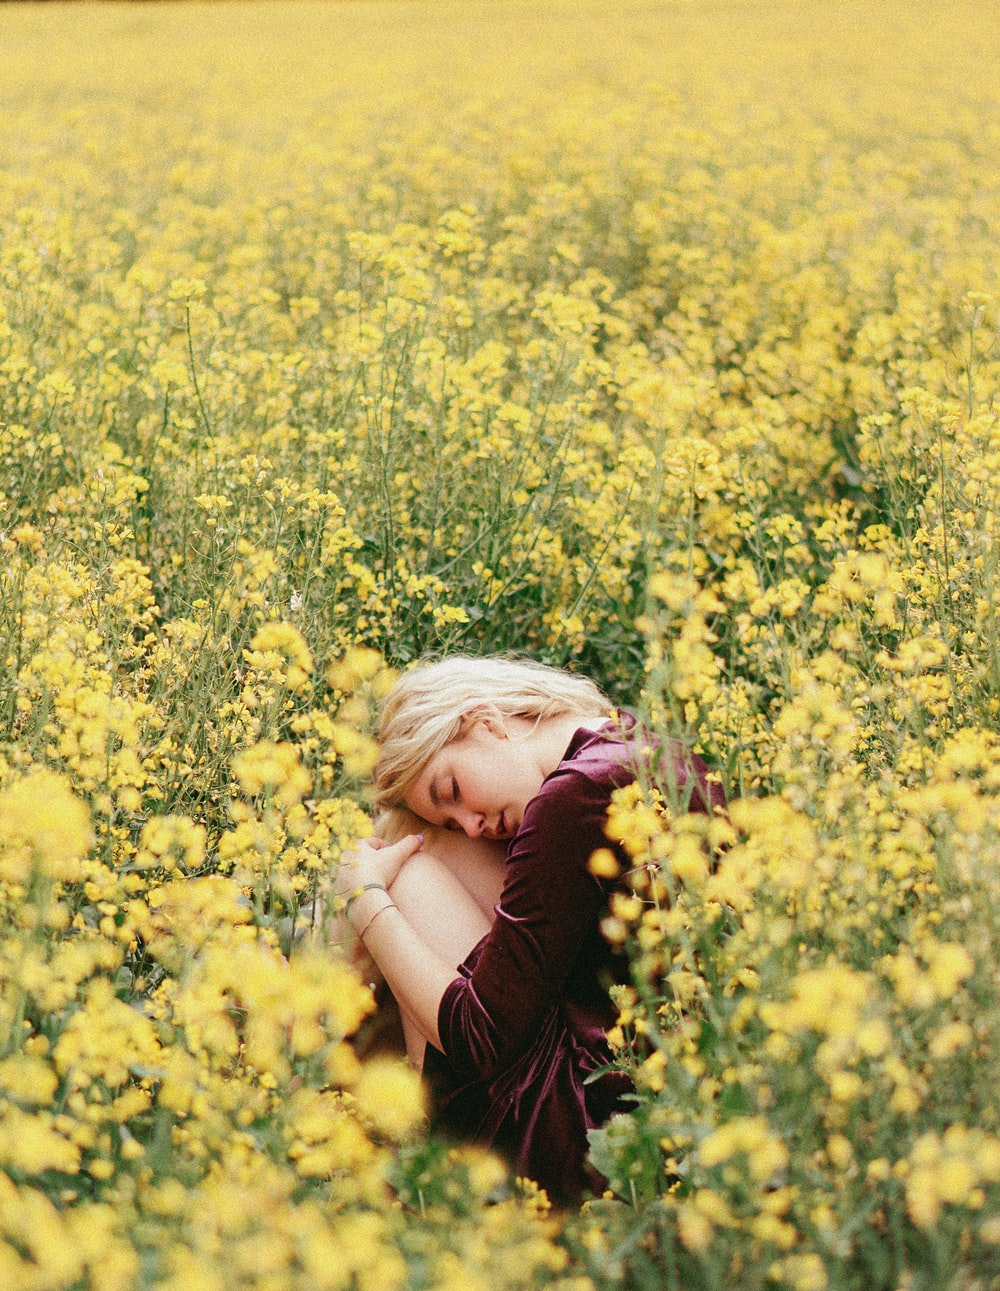 girl in pink shirt on yellow flower field during daytime